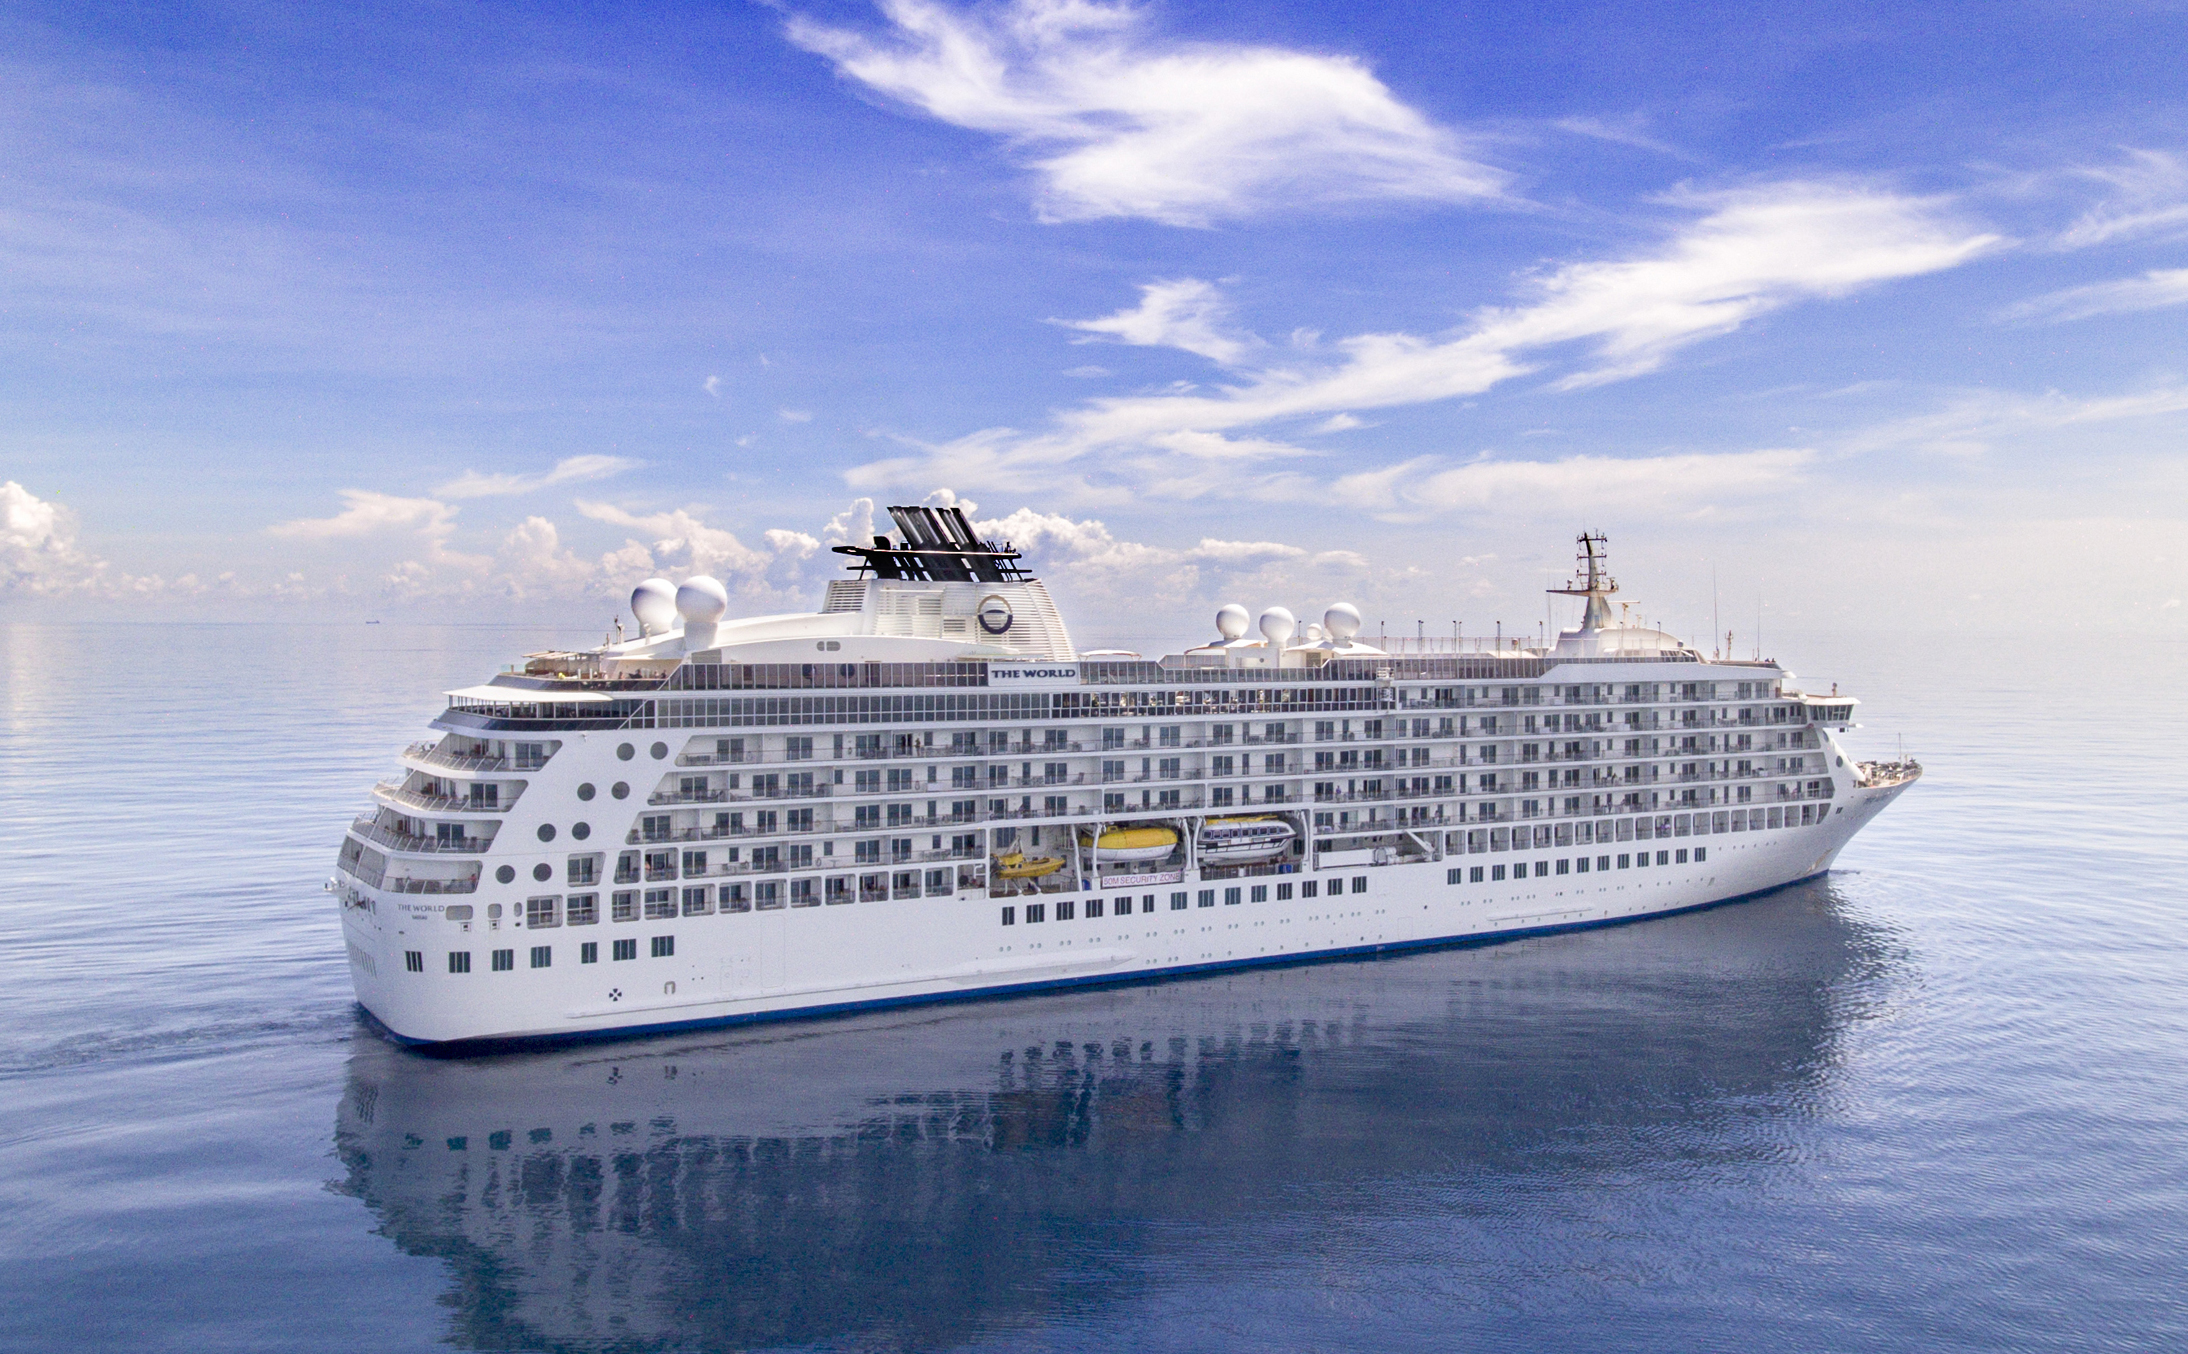 The World residential ship - credit The World